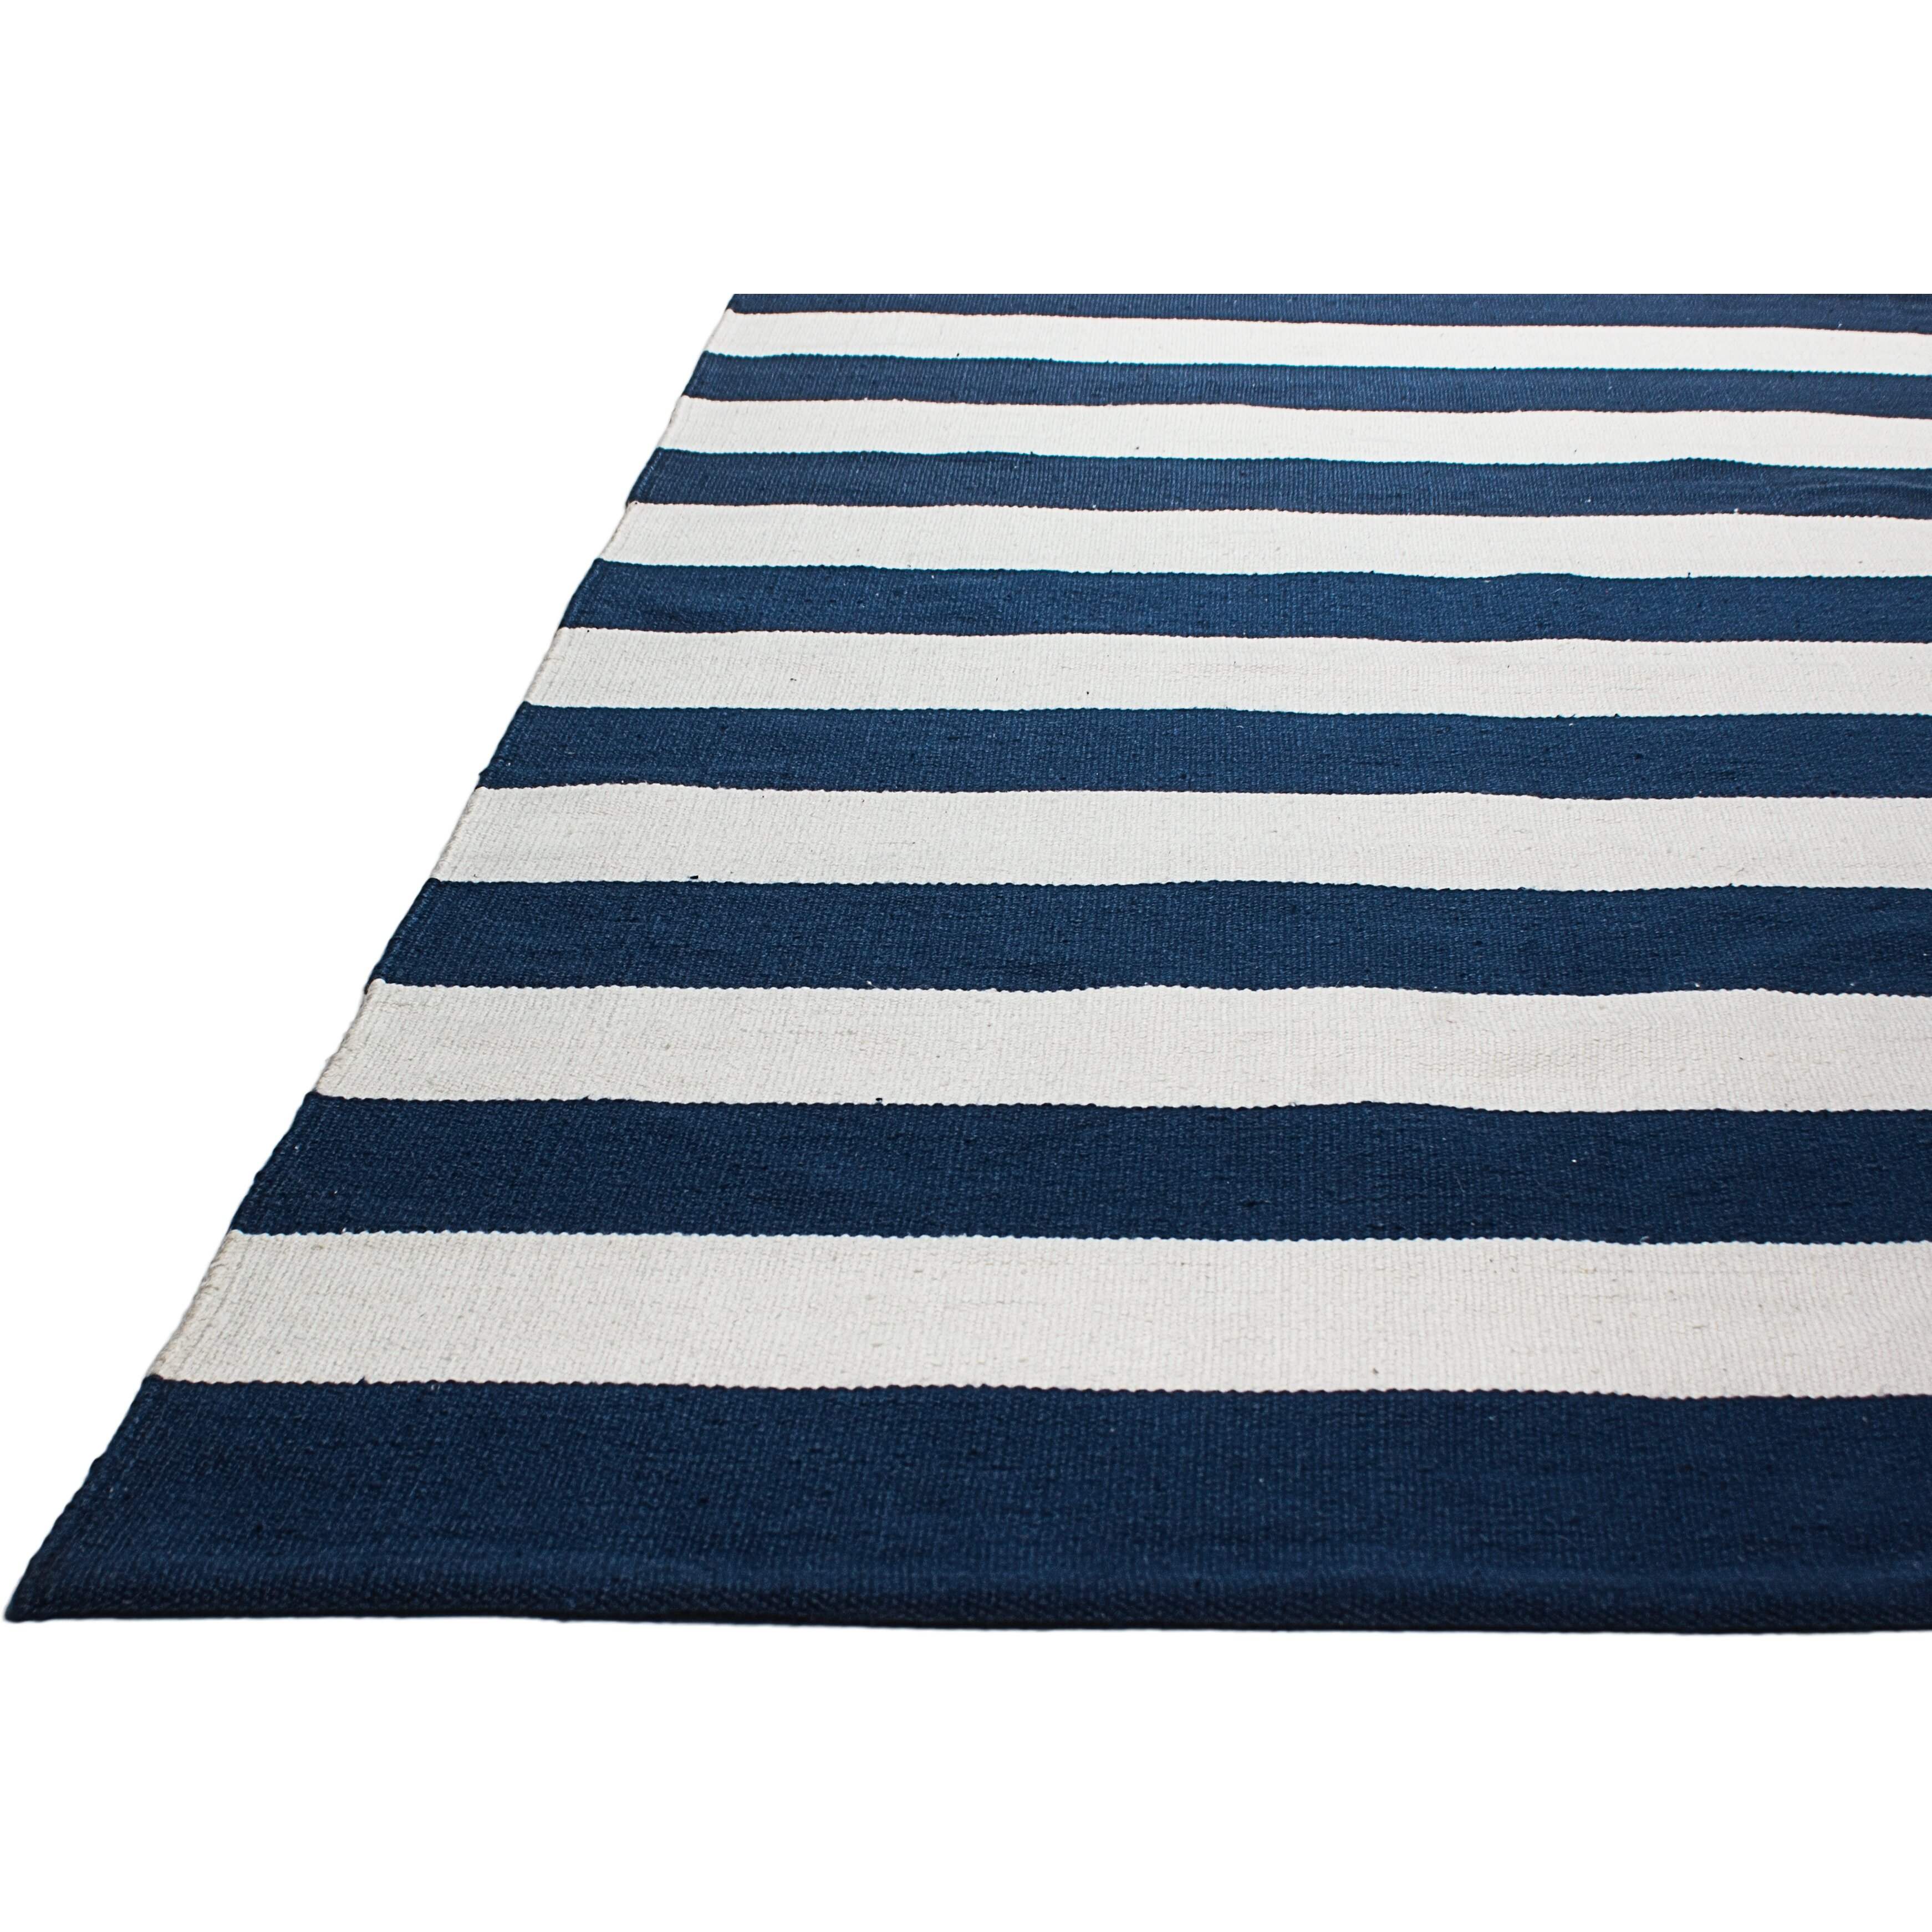 Fab Rugs Nantucket Striped Blue & White Indoor Outdoor